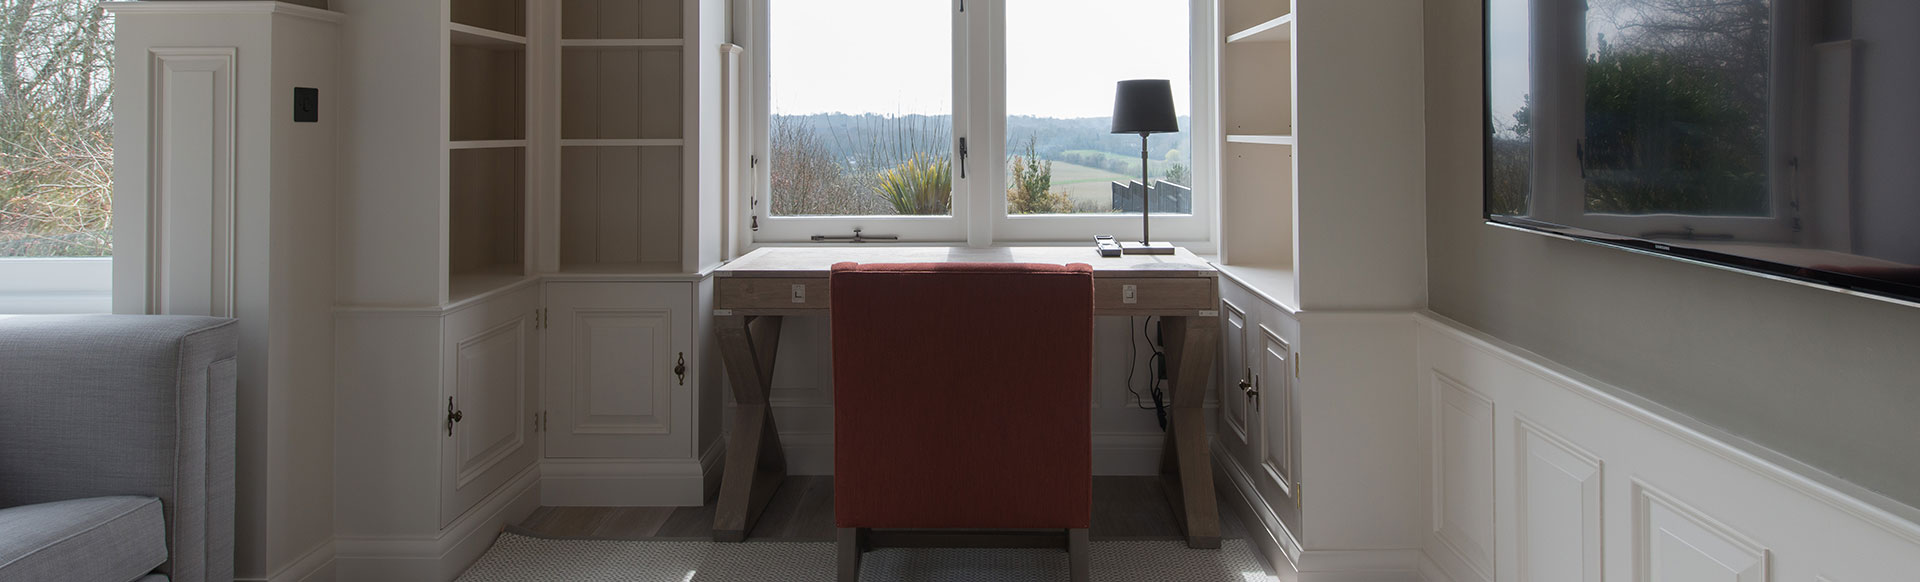 gallery-interiors-seat-with-a-view